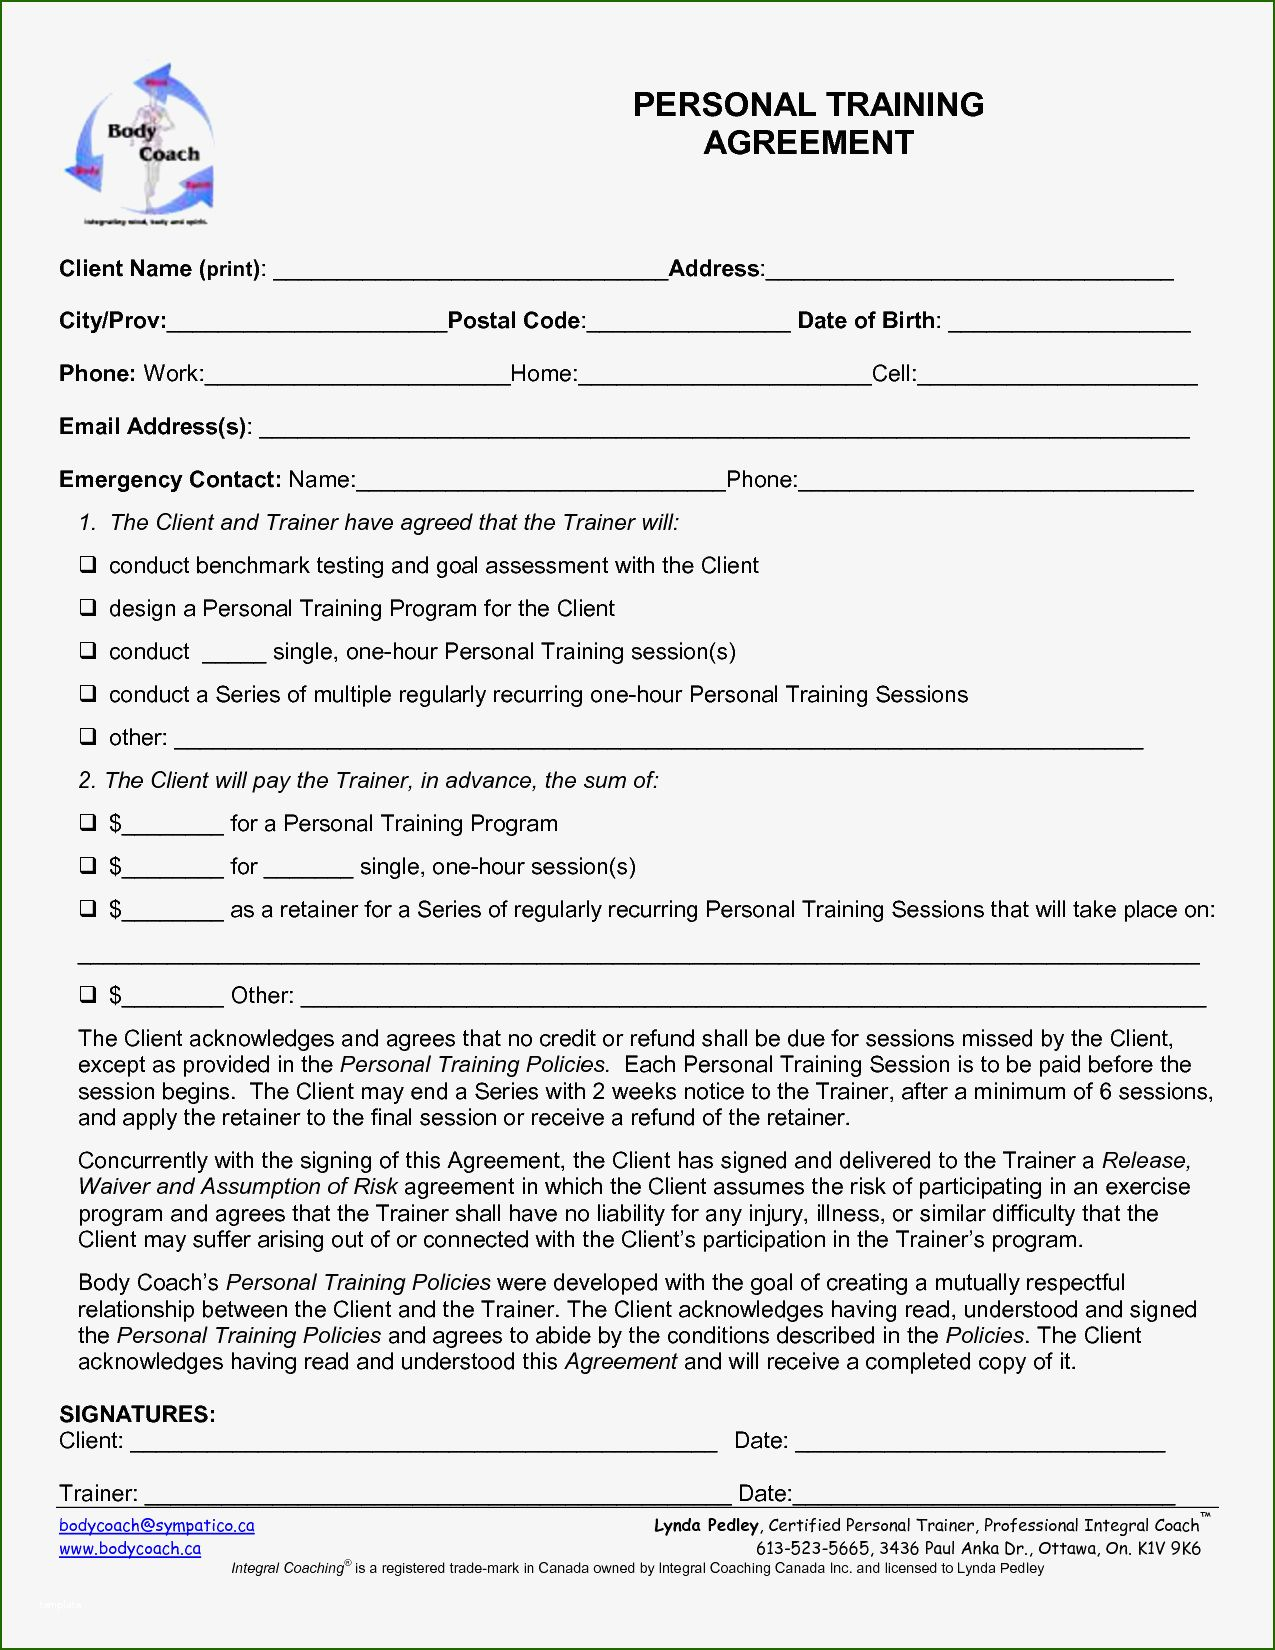 11 Admirable Personal Training Contracts Template That Don